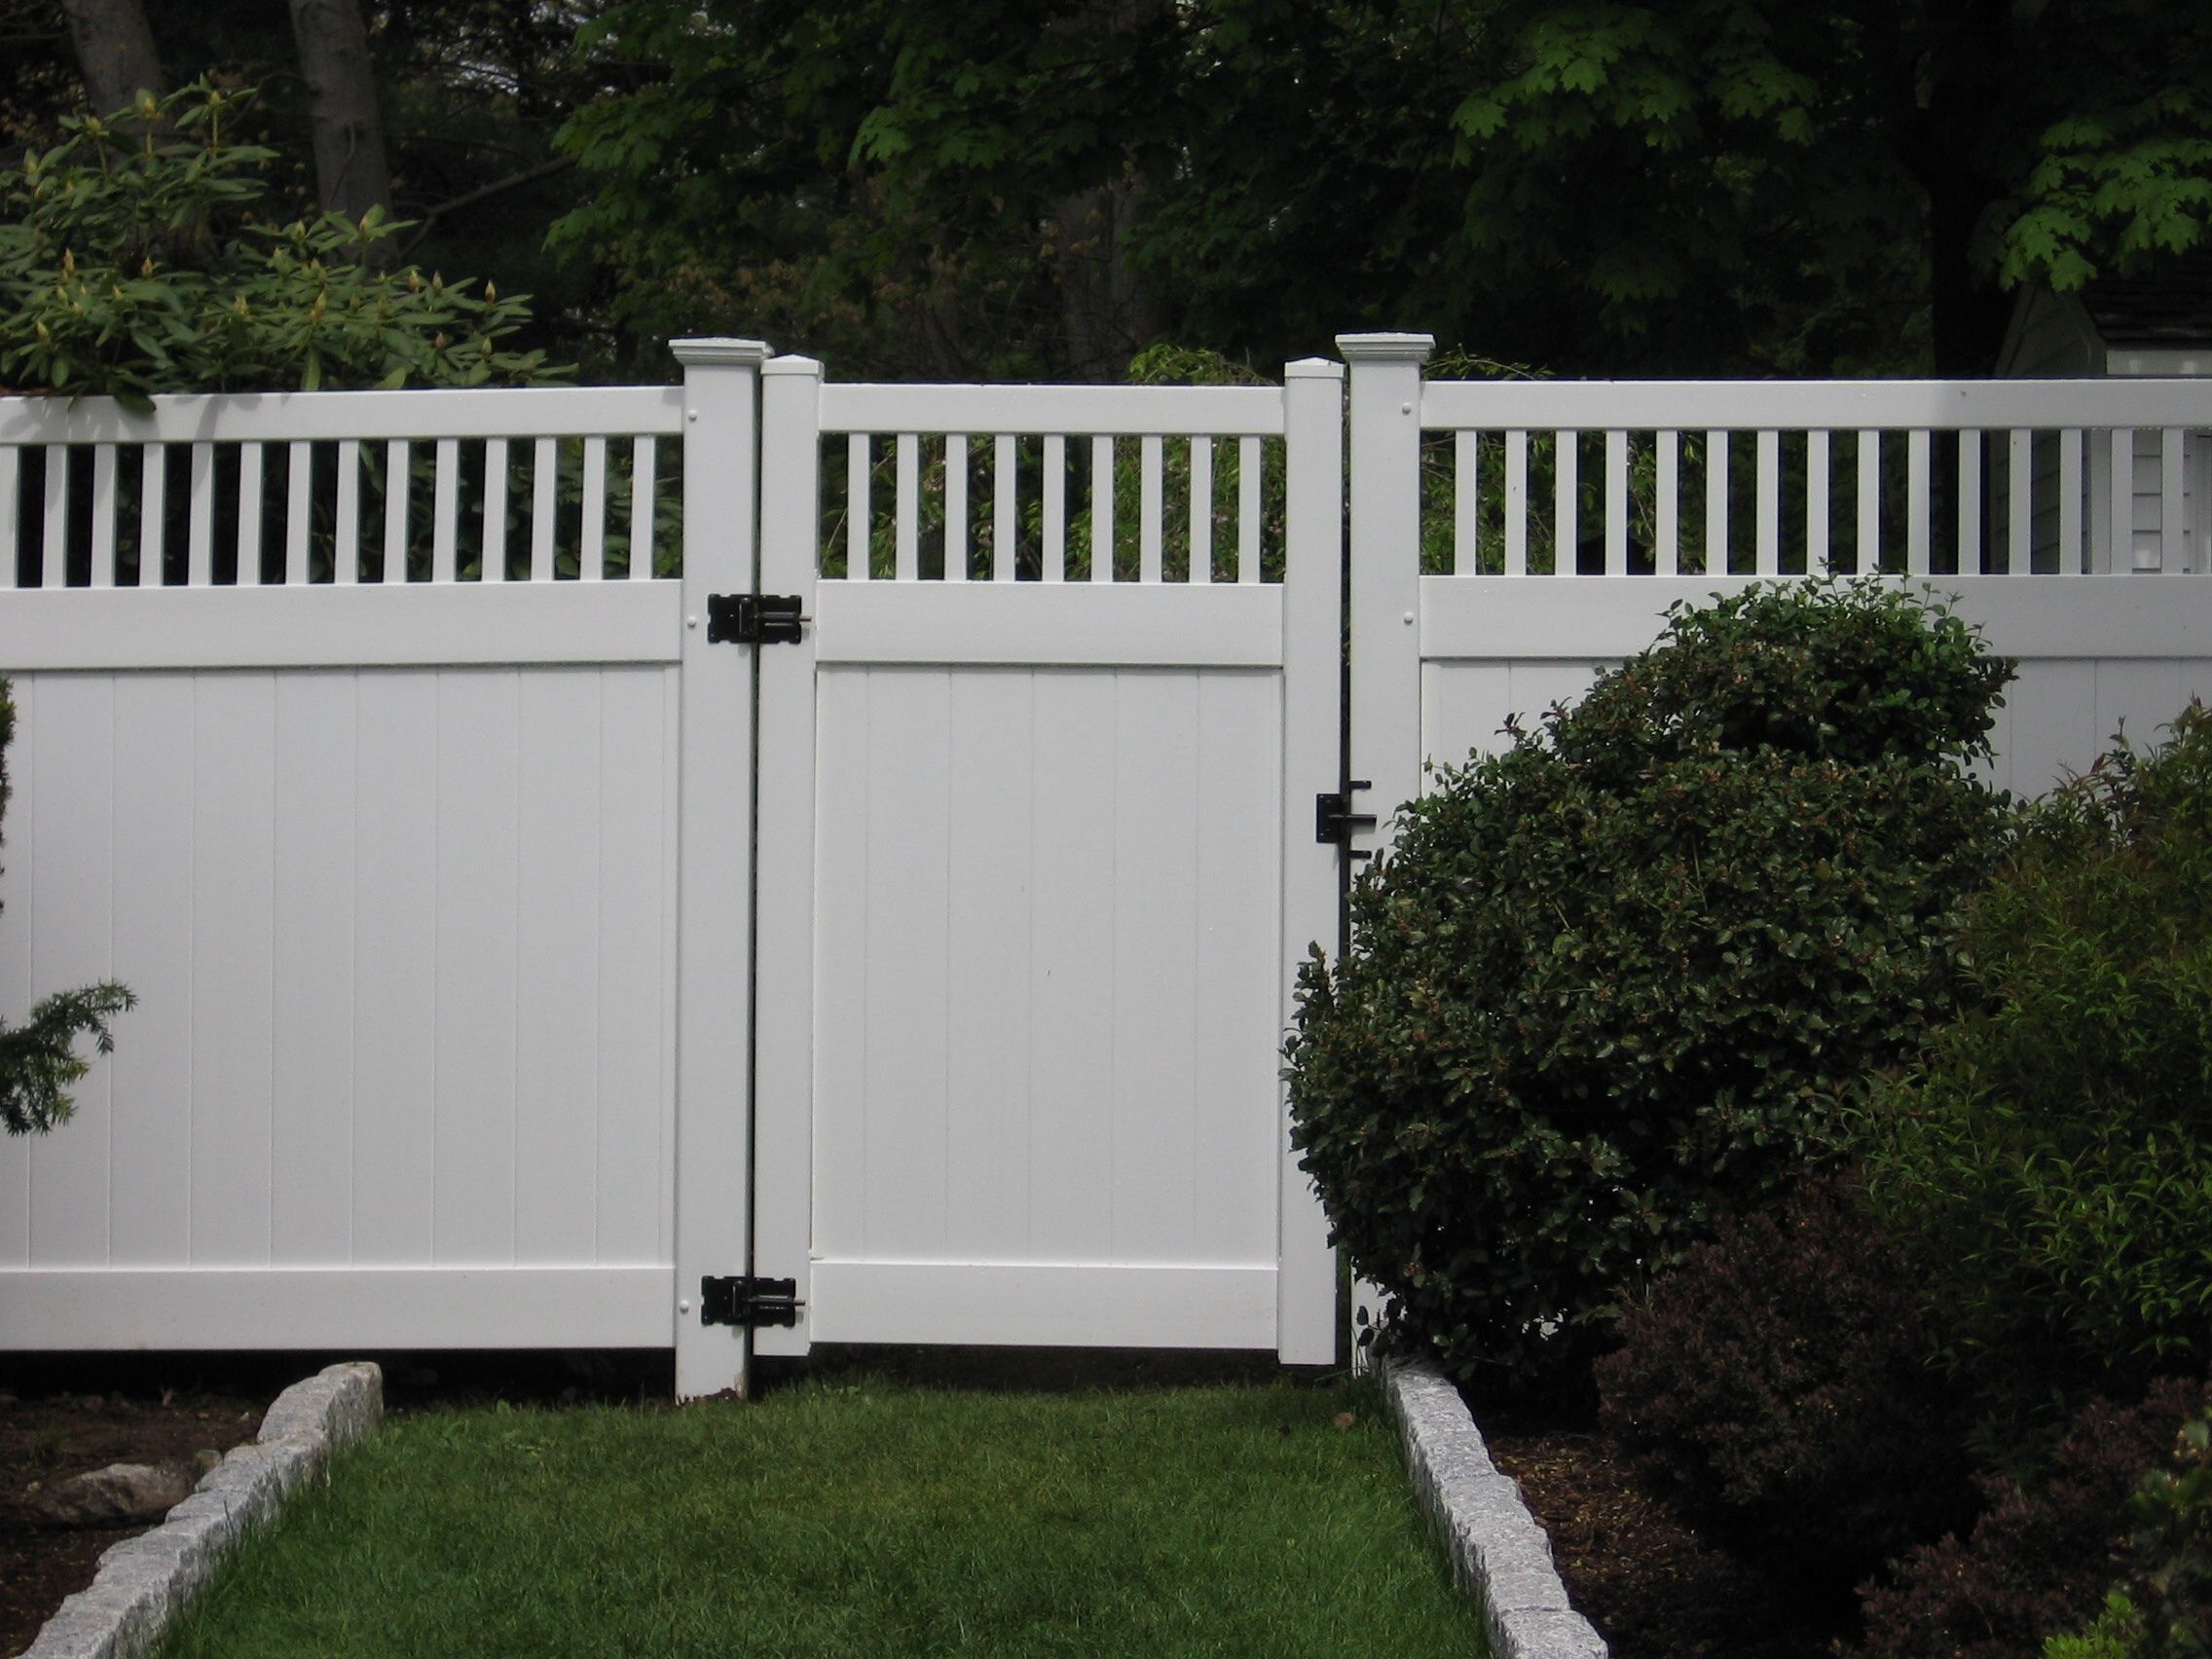 vinyl fences with a gate vinyl fence with essex topper fences boston ma this fence. Black Bedroom Furniture Sets. Home Design Ideas